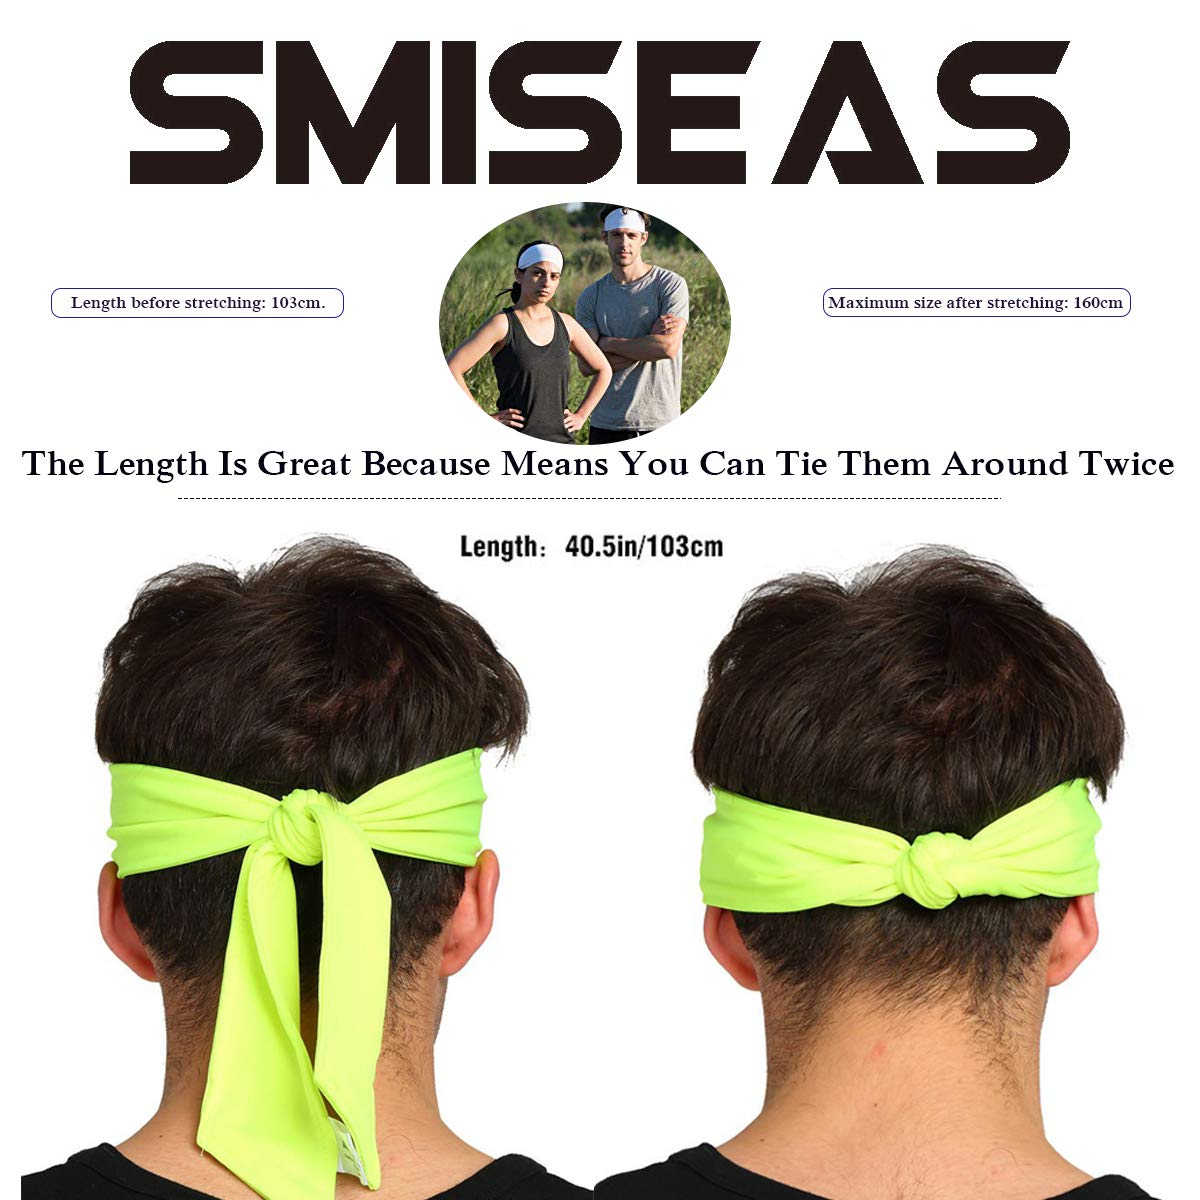 Crossfit Yoga Cycling Basketball Mens Sweatband /& Womens Headband with Perfect Sweat Absorption/&Non Slip for Running Stretchy Moisture Wicking Hairband SMISEAS Sports Head Ties for Men